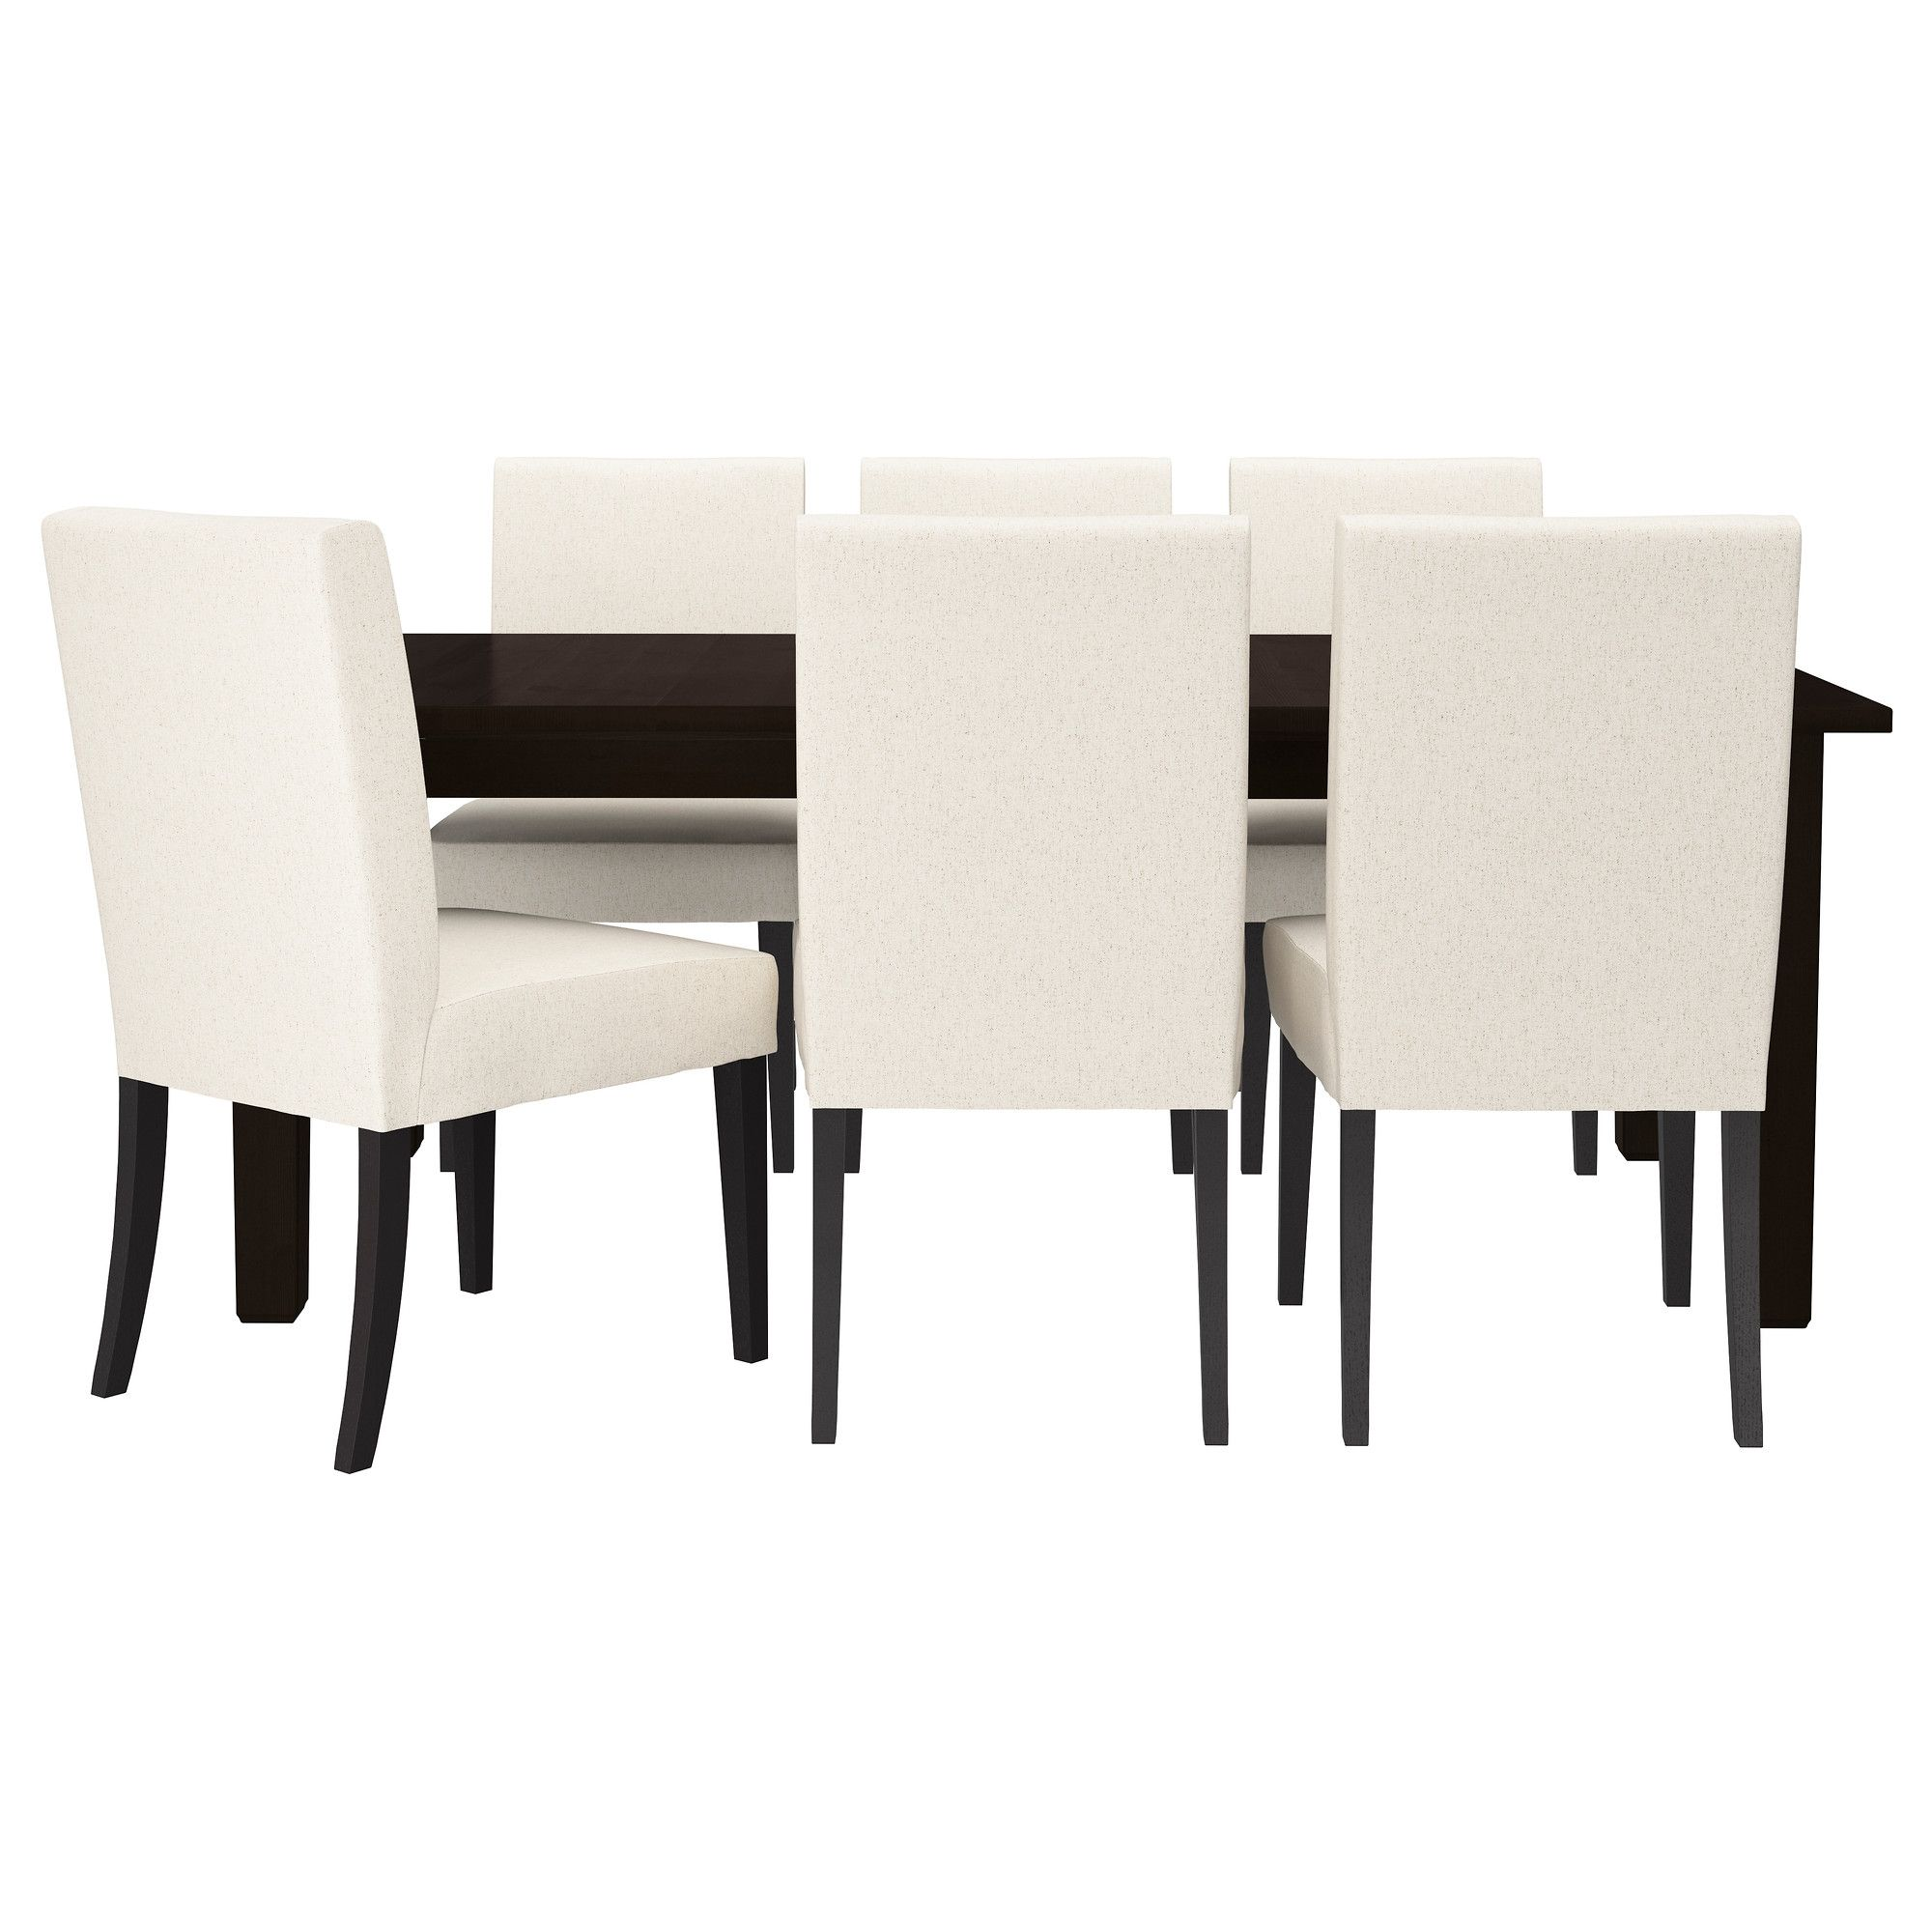 Remarkable Stornas Henriksdal Table And 6 Chairs Ikea Love This For Dailytribune Chair Design For Home Dailytribuneorg